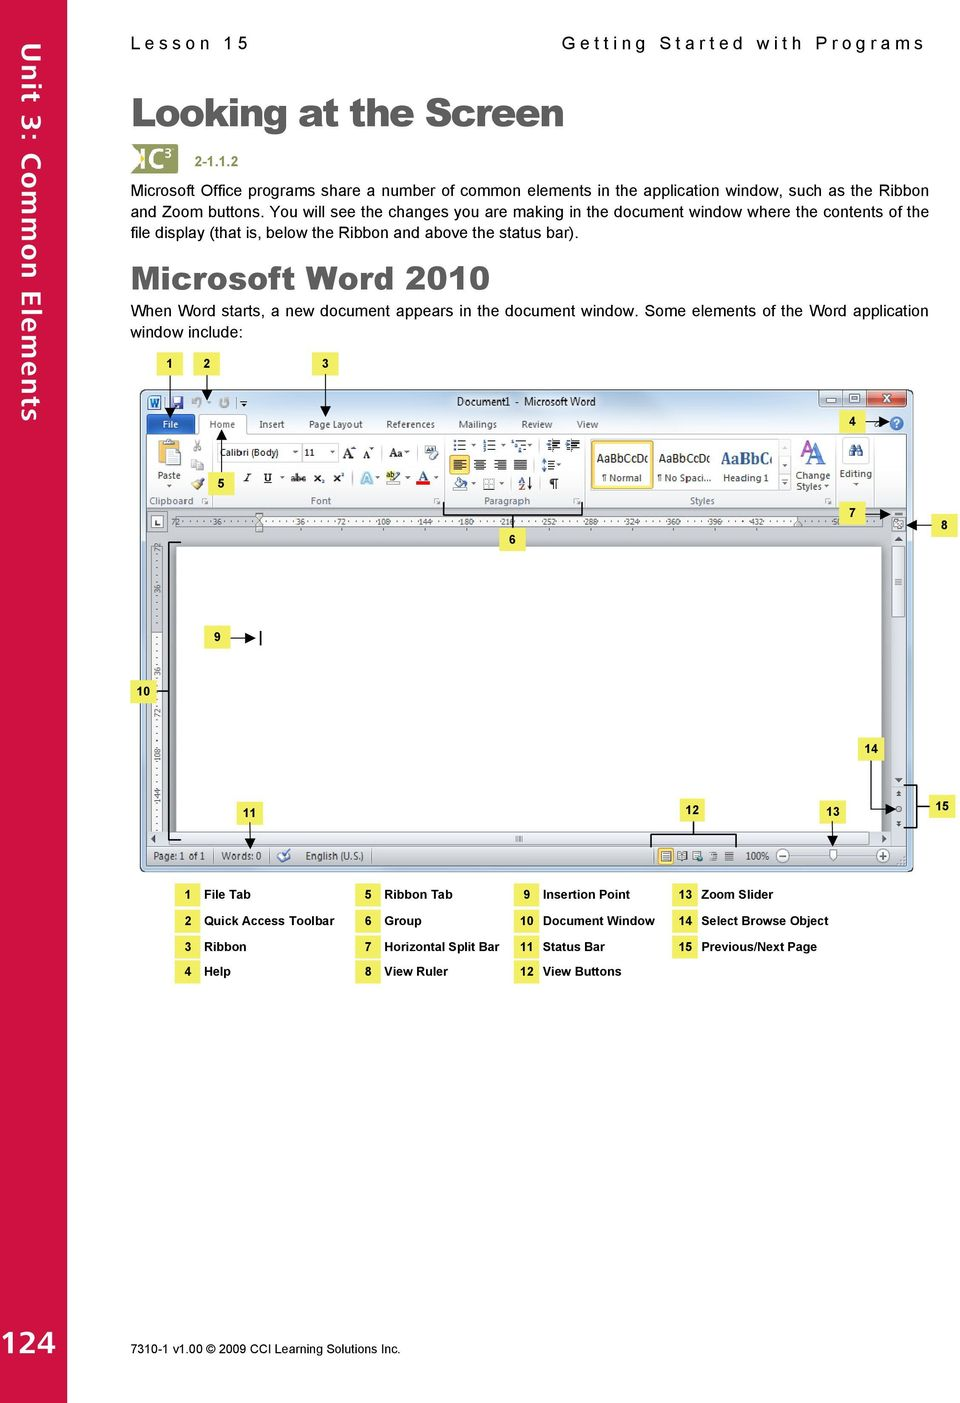 Microsoft Word 2010 When Word starts, a new document appears in the document window.